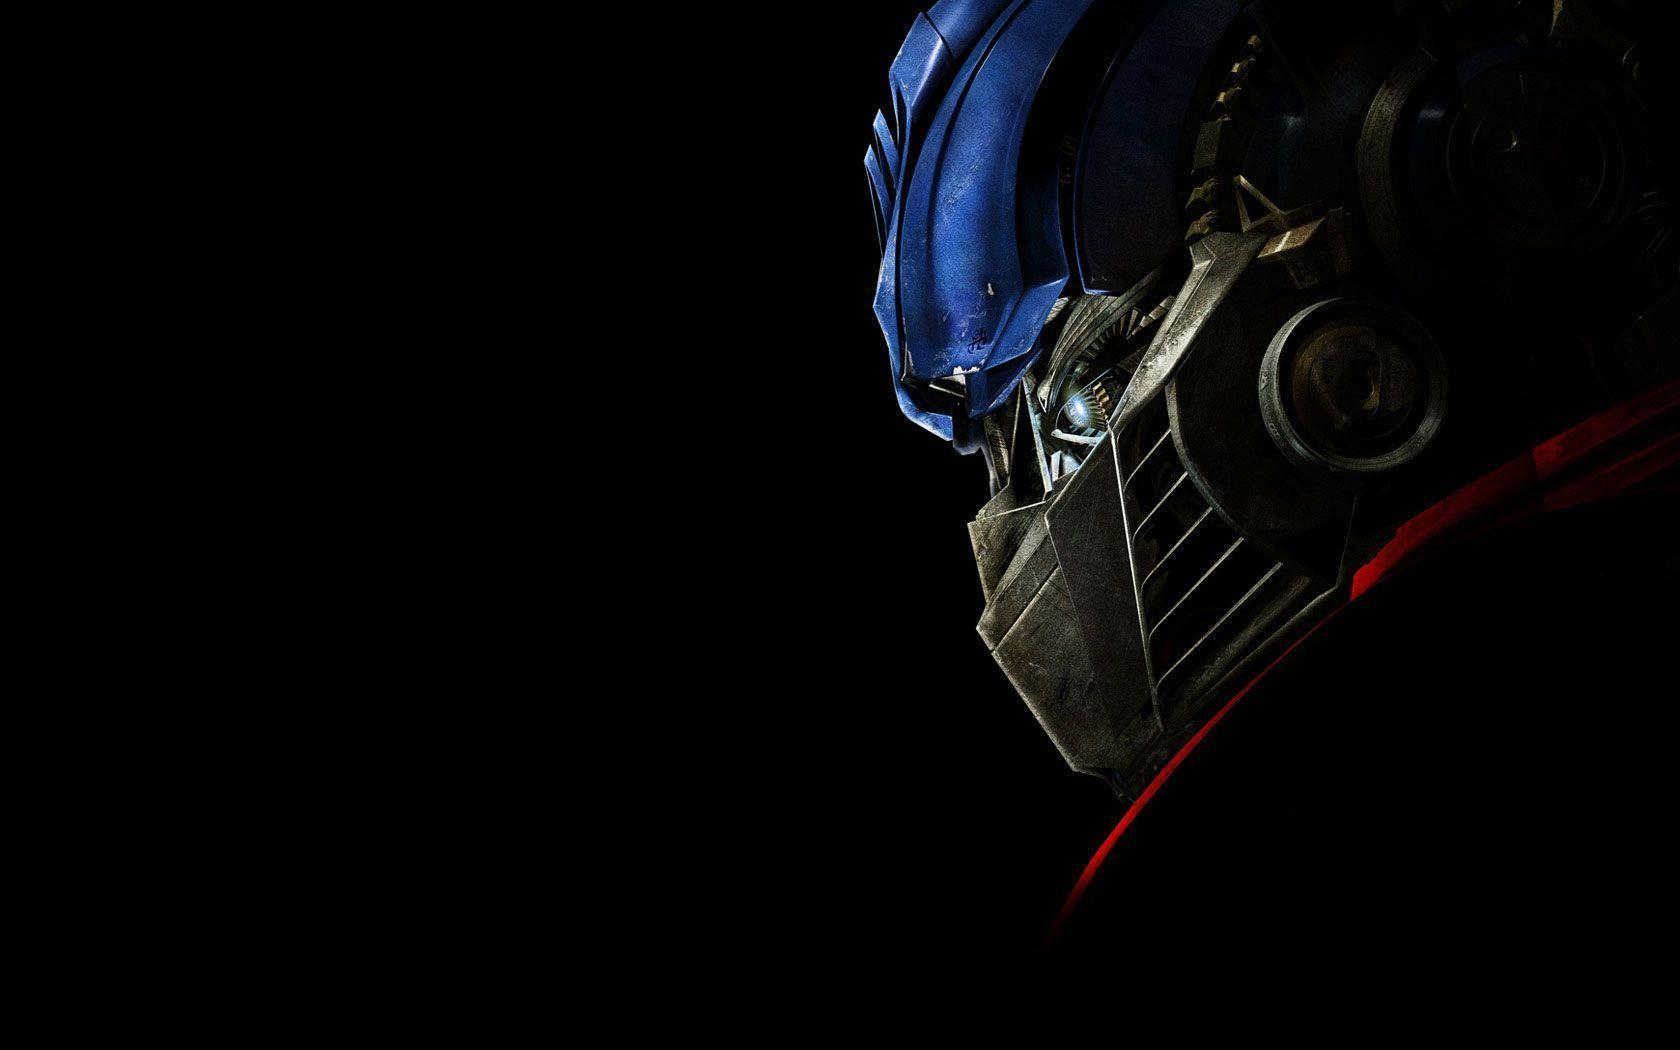 optimus prime wallpaper download - photo #33